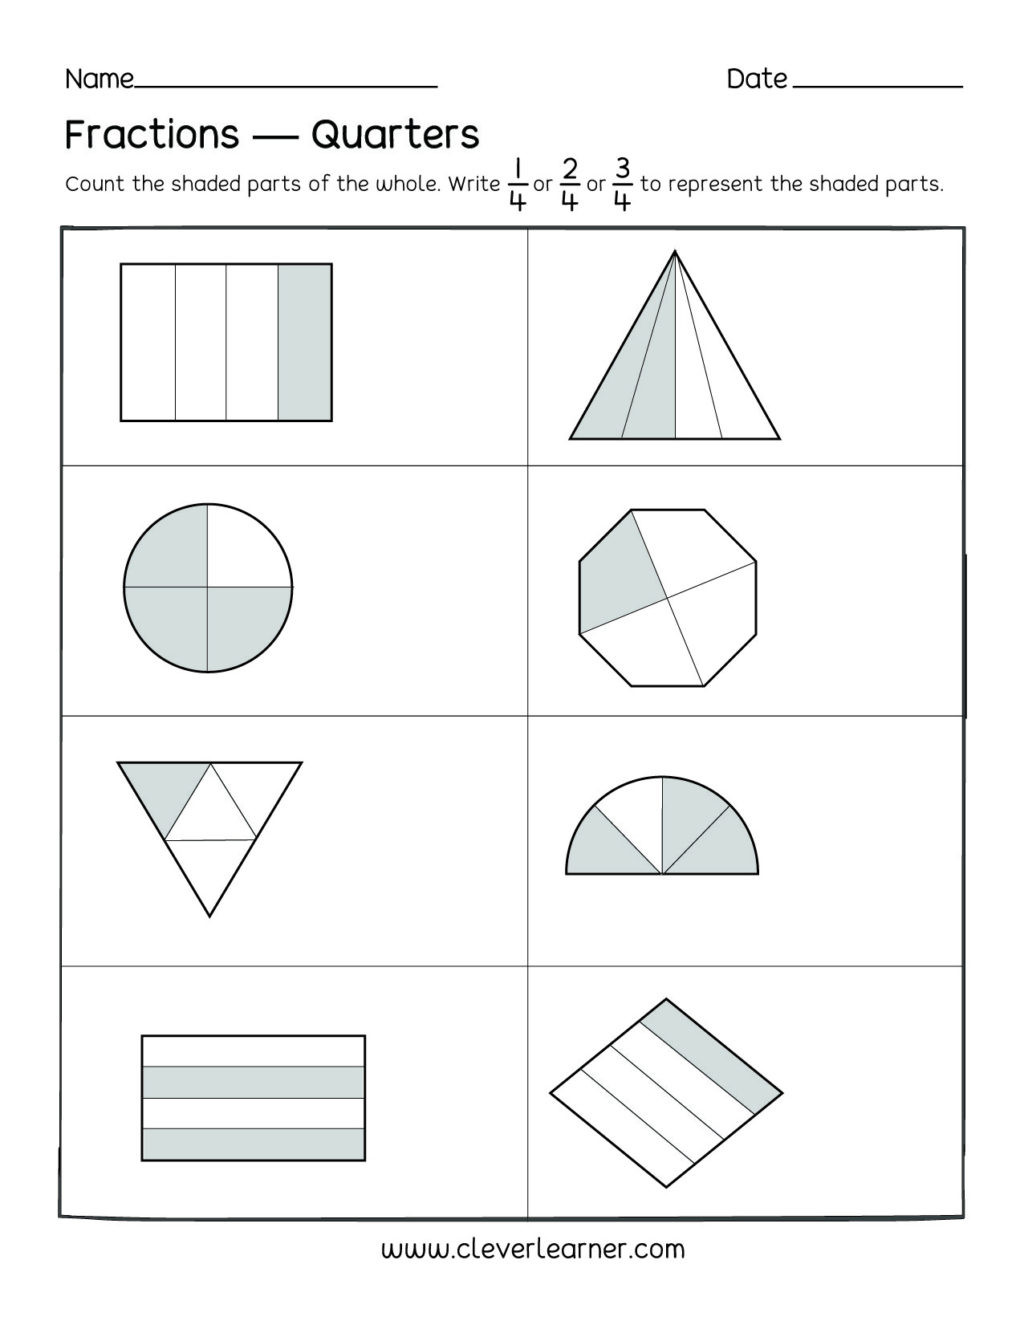 Second Grade Fraction Worksheets Worksheet Worksheet Remarkable Second Grade Fractionsets